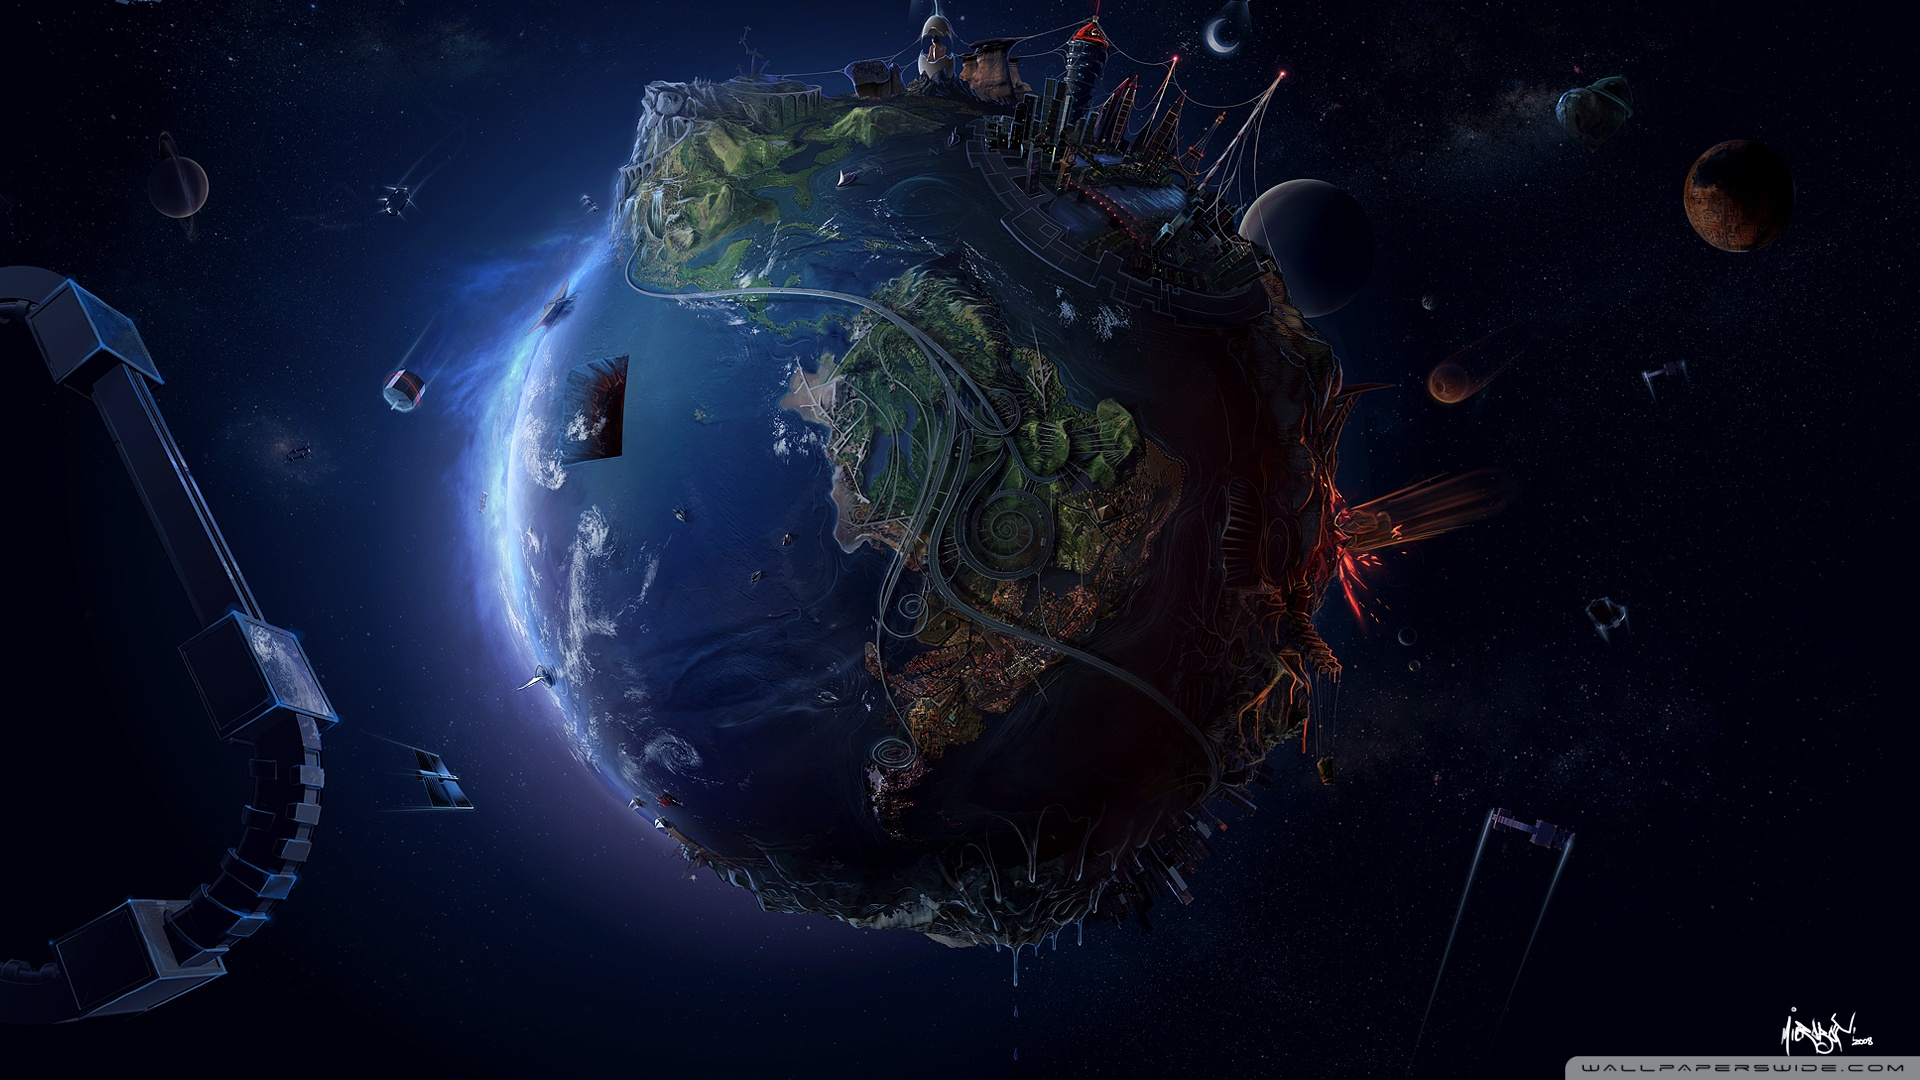 Earth In The Future Hd Desktop Wallpaper High Definition - Earth Space Wallpaper Pc Hd , HD Wallpaper & Backgrounds